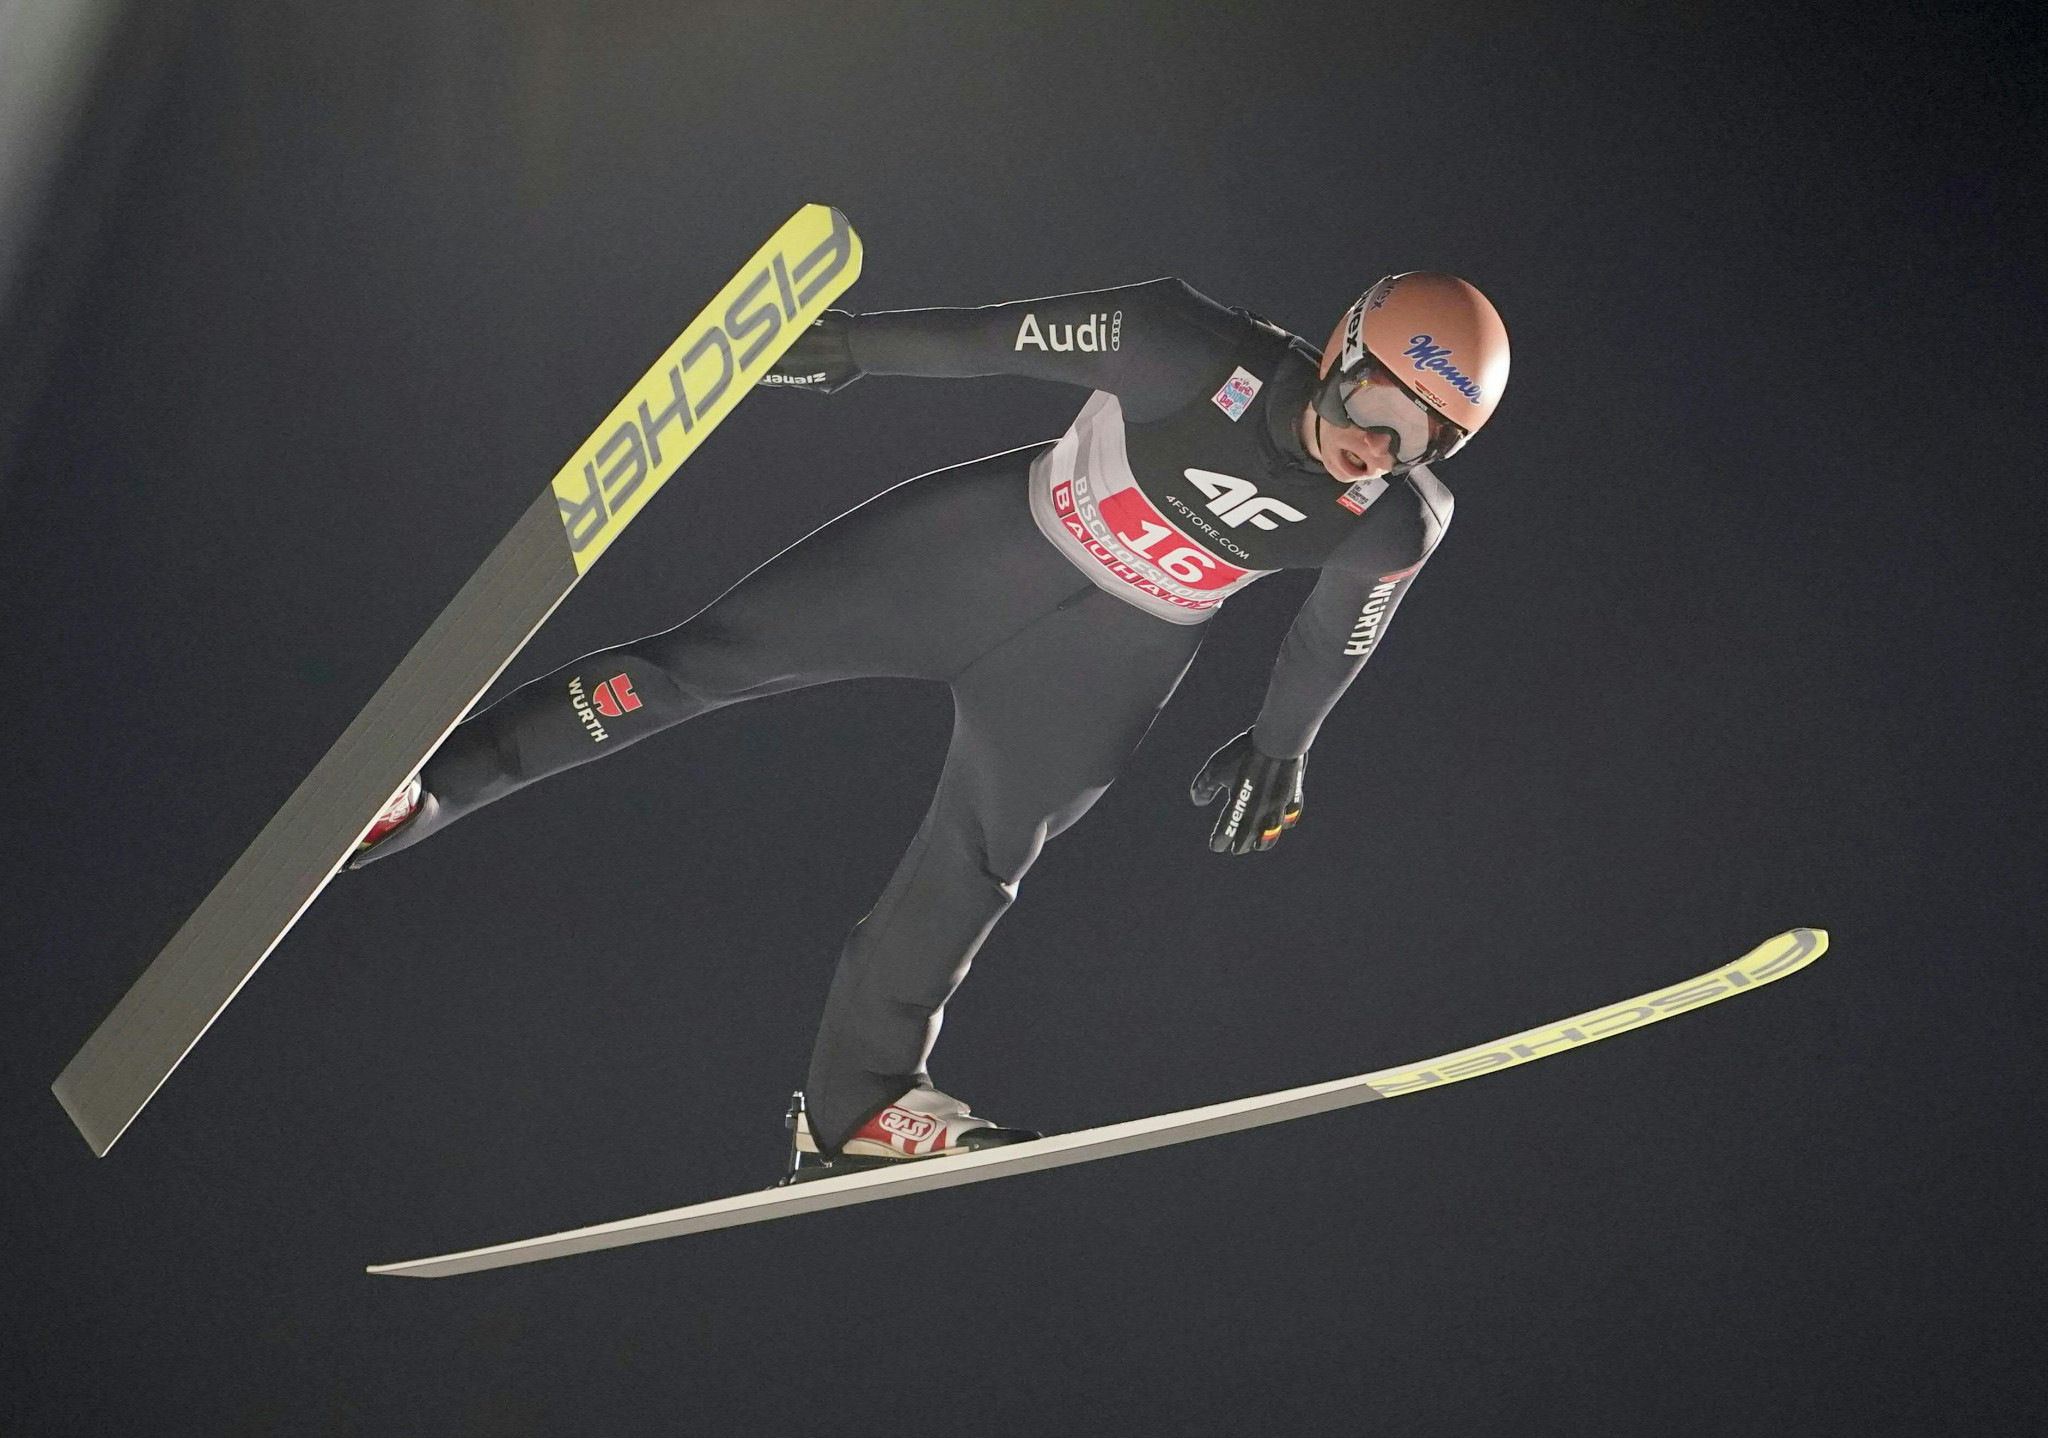 Geiger out to continue superb form at home FIS Ski Jumping World Cup in Titisee-Neustadt